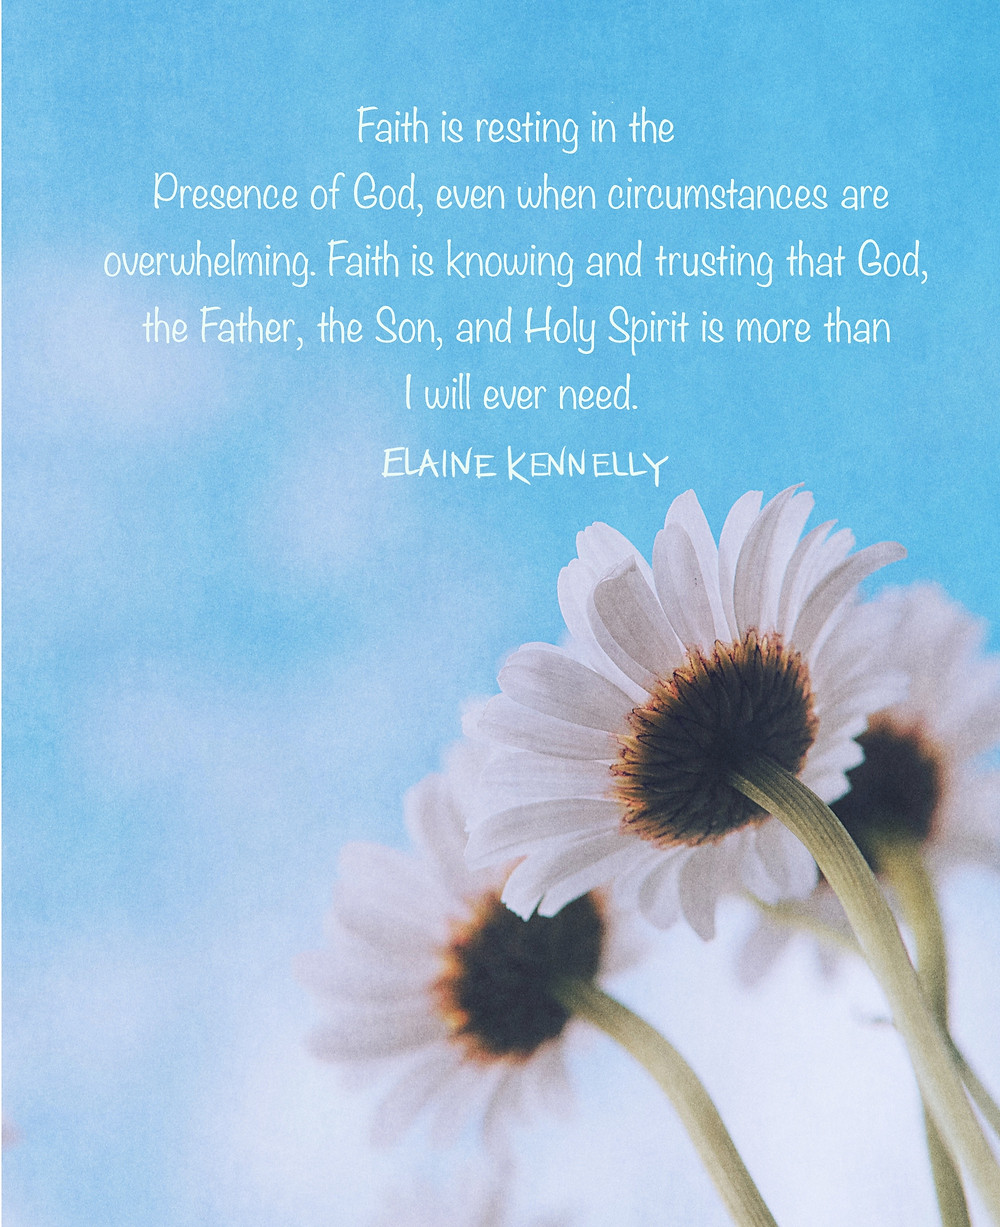 Blue sky with Christian writer, Elaine Kennelly, quote: Faith is resting in the Presence of God, even when circumstances are overwhelming. Faith is knowing and trusting that God, the Faith, the Son, and the Holy Spirit is more than I will ever need.